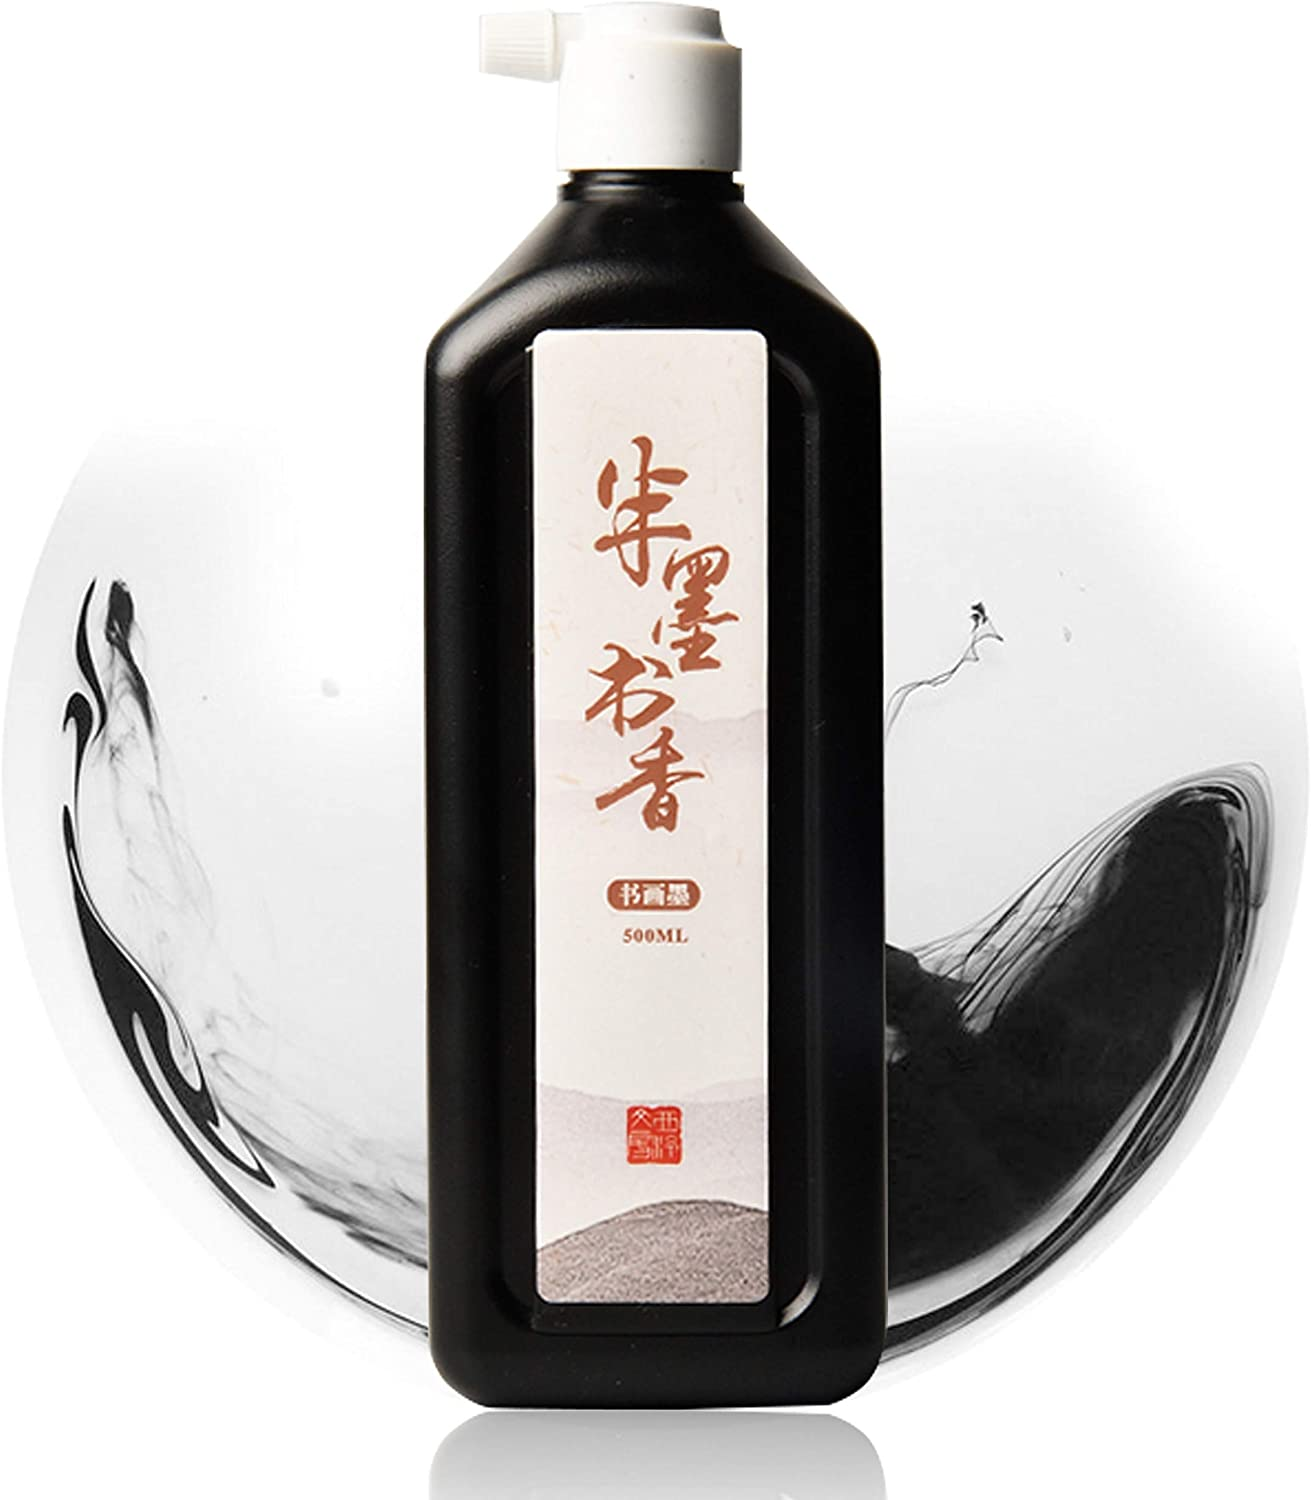 500ML(16.9oz) Black Liquid Chinese Ink/Sumi Ink for Chinese/Japanese Calligraphy and Painting on Paper